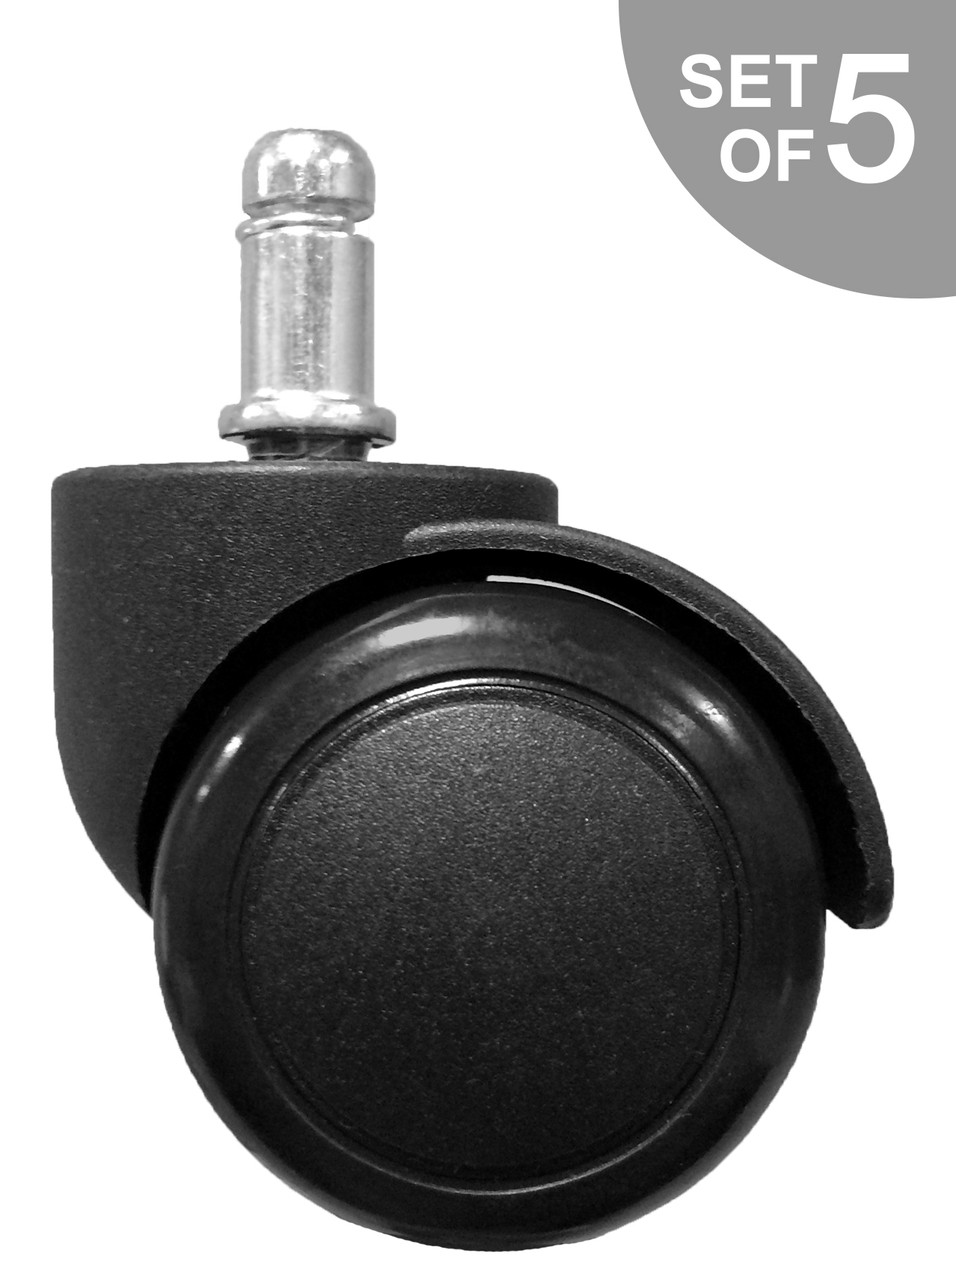 Replacement Hard Floor Office Chair Caster Set Of 5 FREE